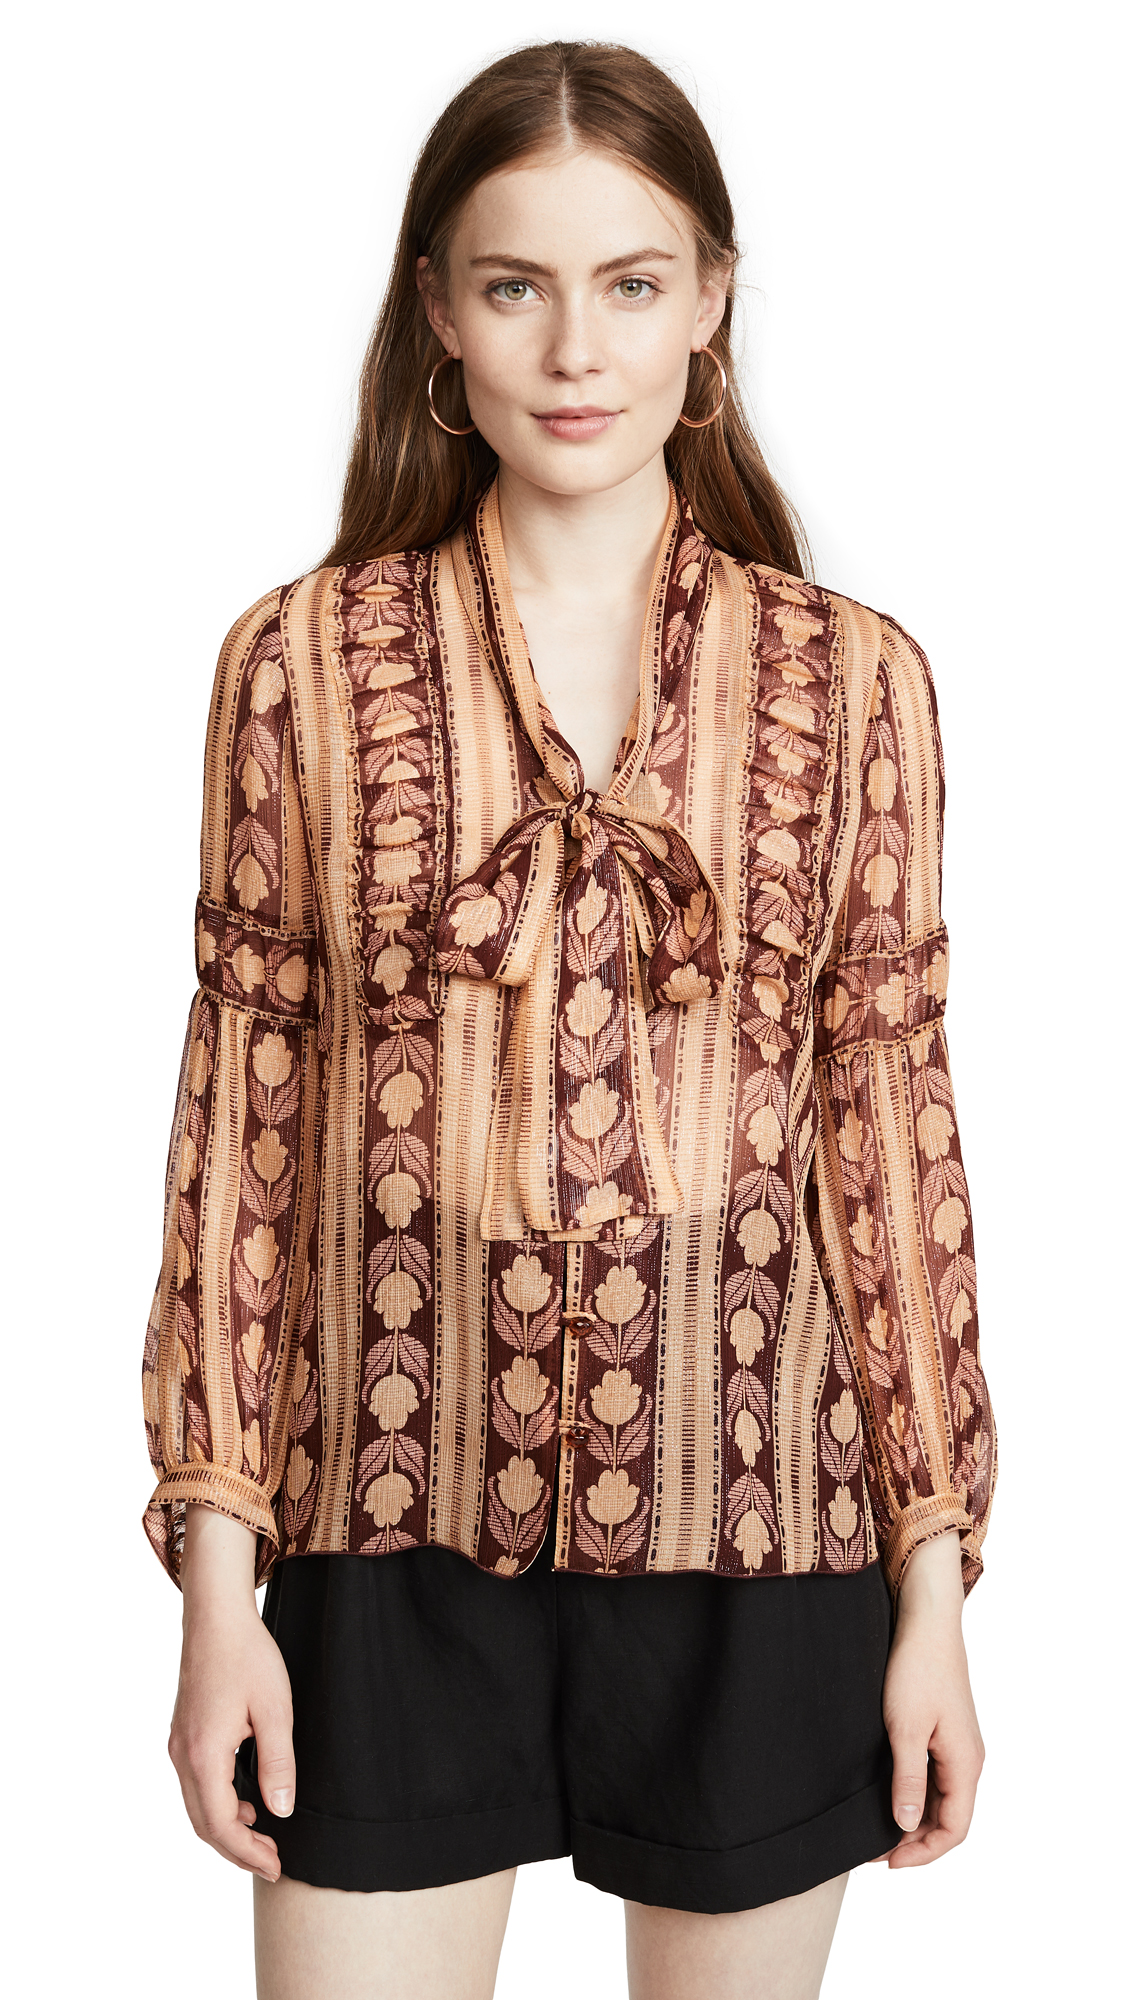 ROSES BLOUSE